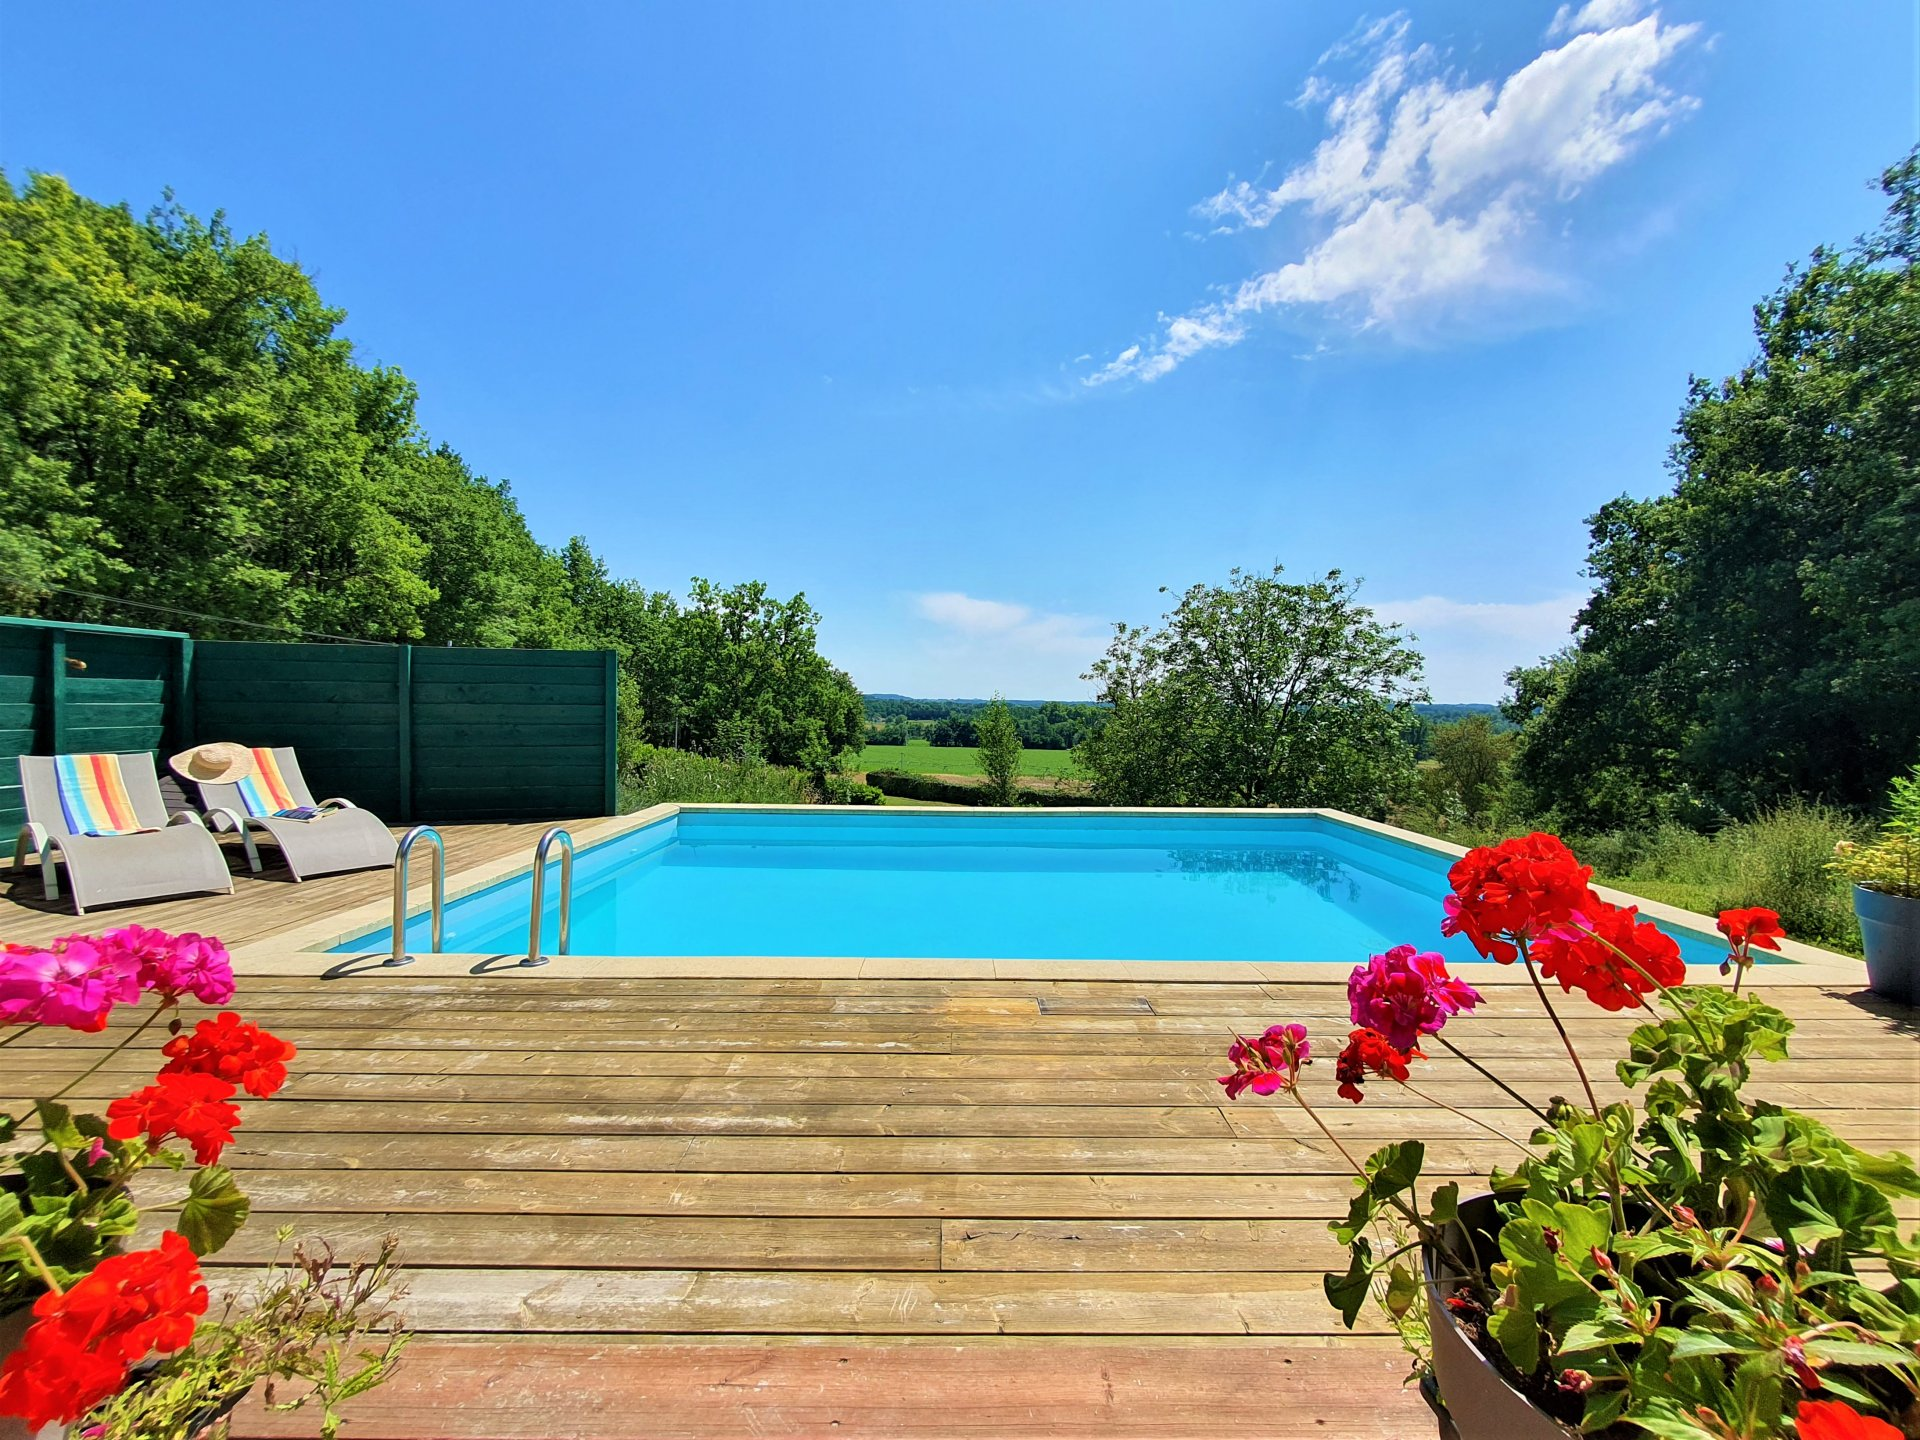 DON'T MISS OUT ON THIS 3 BED HOUSE WITH POOL AND ENVIABLE VIEWS!